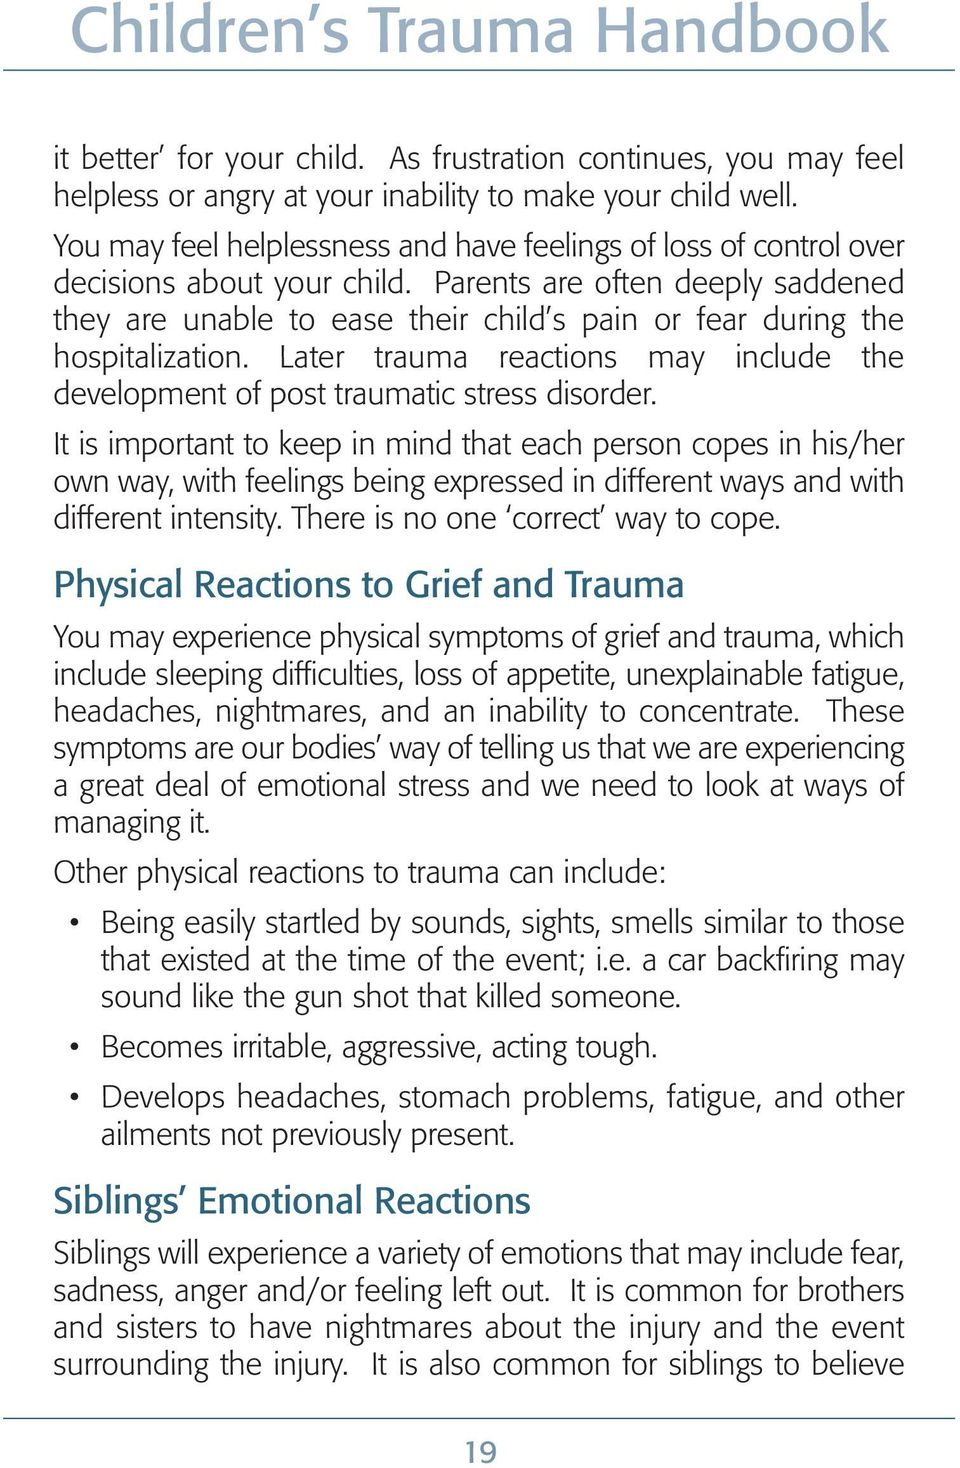 Parents are often deeply saddened they are unable to ease their child s pain or fear during the hospitalization. Later trauma reactions may include the development of post traumatic stress disorder.